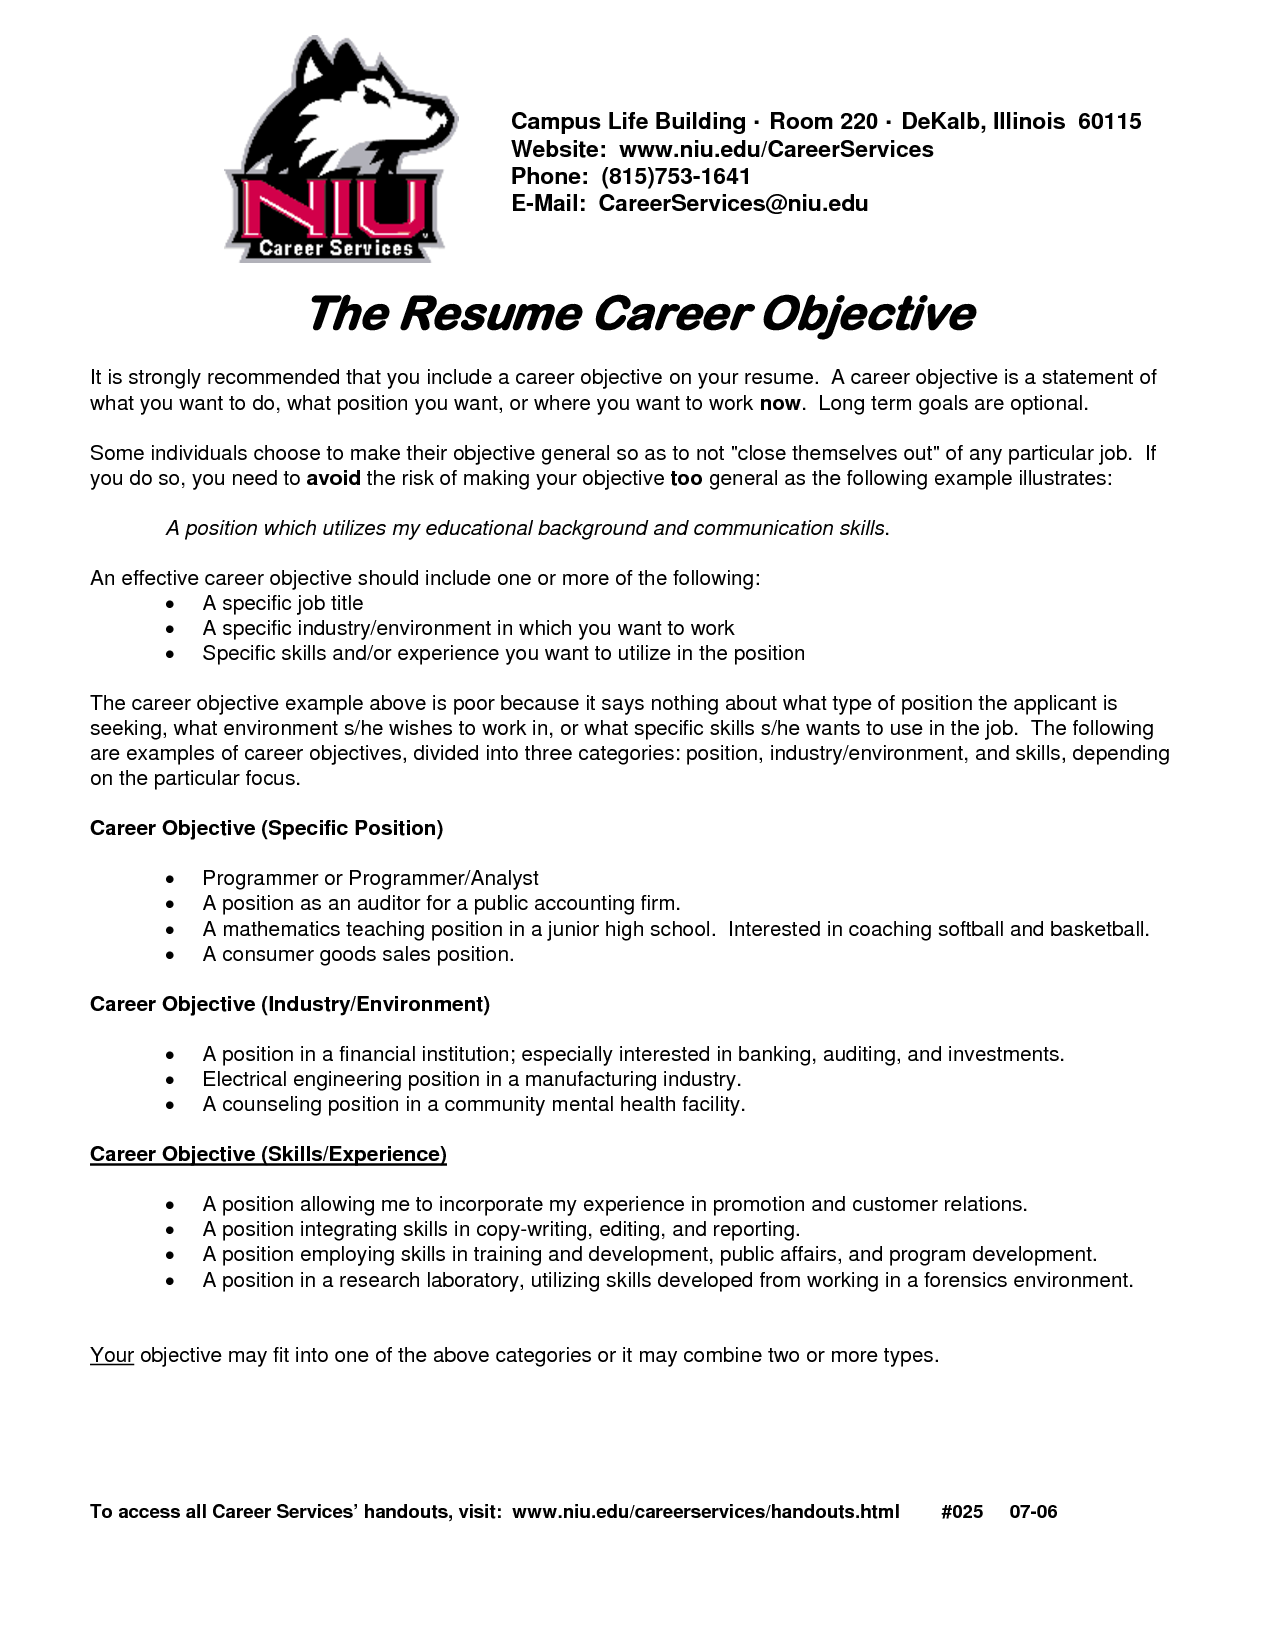 career objective examples for cv - Sample Job Objective For Resume